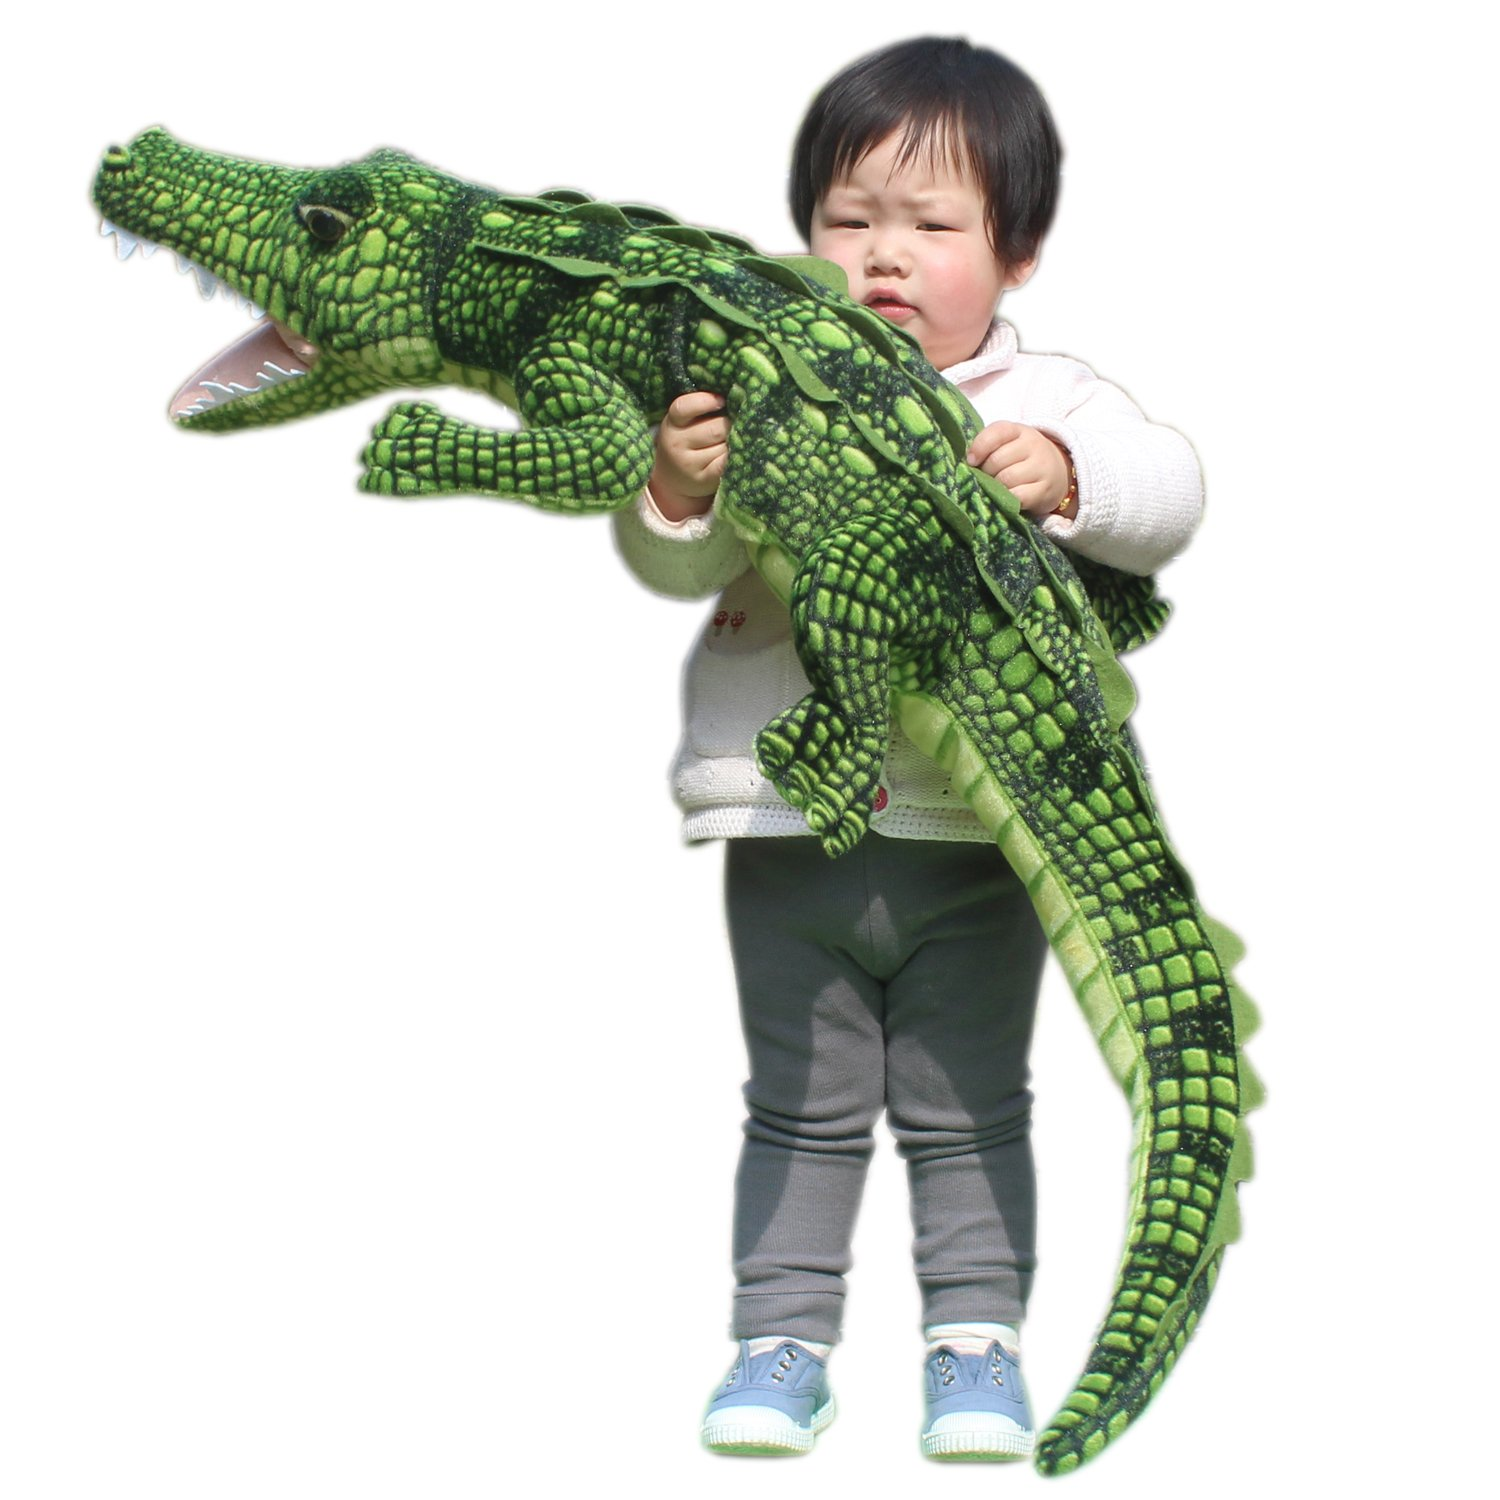 JESONN Realistic Soft Plush Animals Stuffed Toys Crocodile for Kids' Pillow and Gifts,43.3 Inches or 110CM,1PC